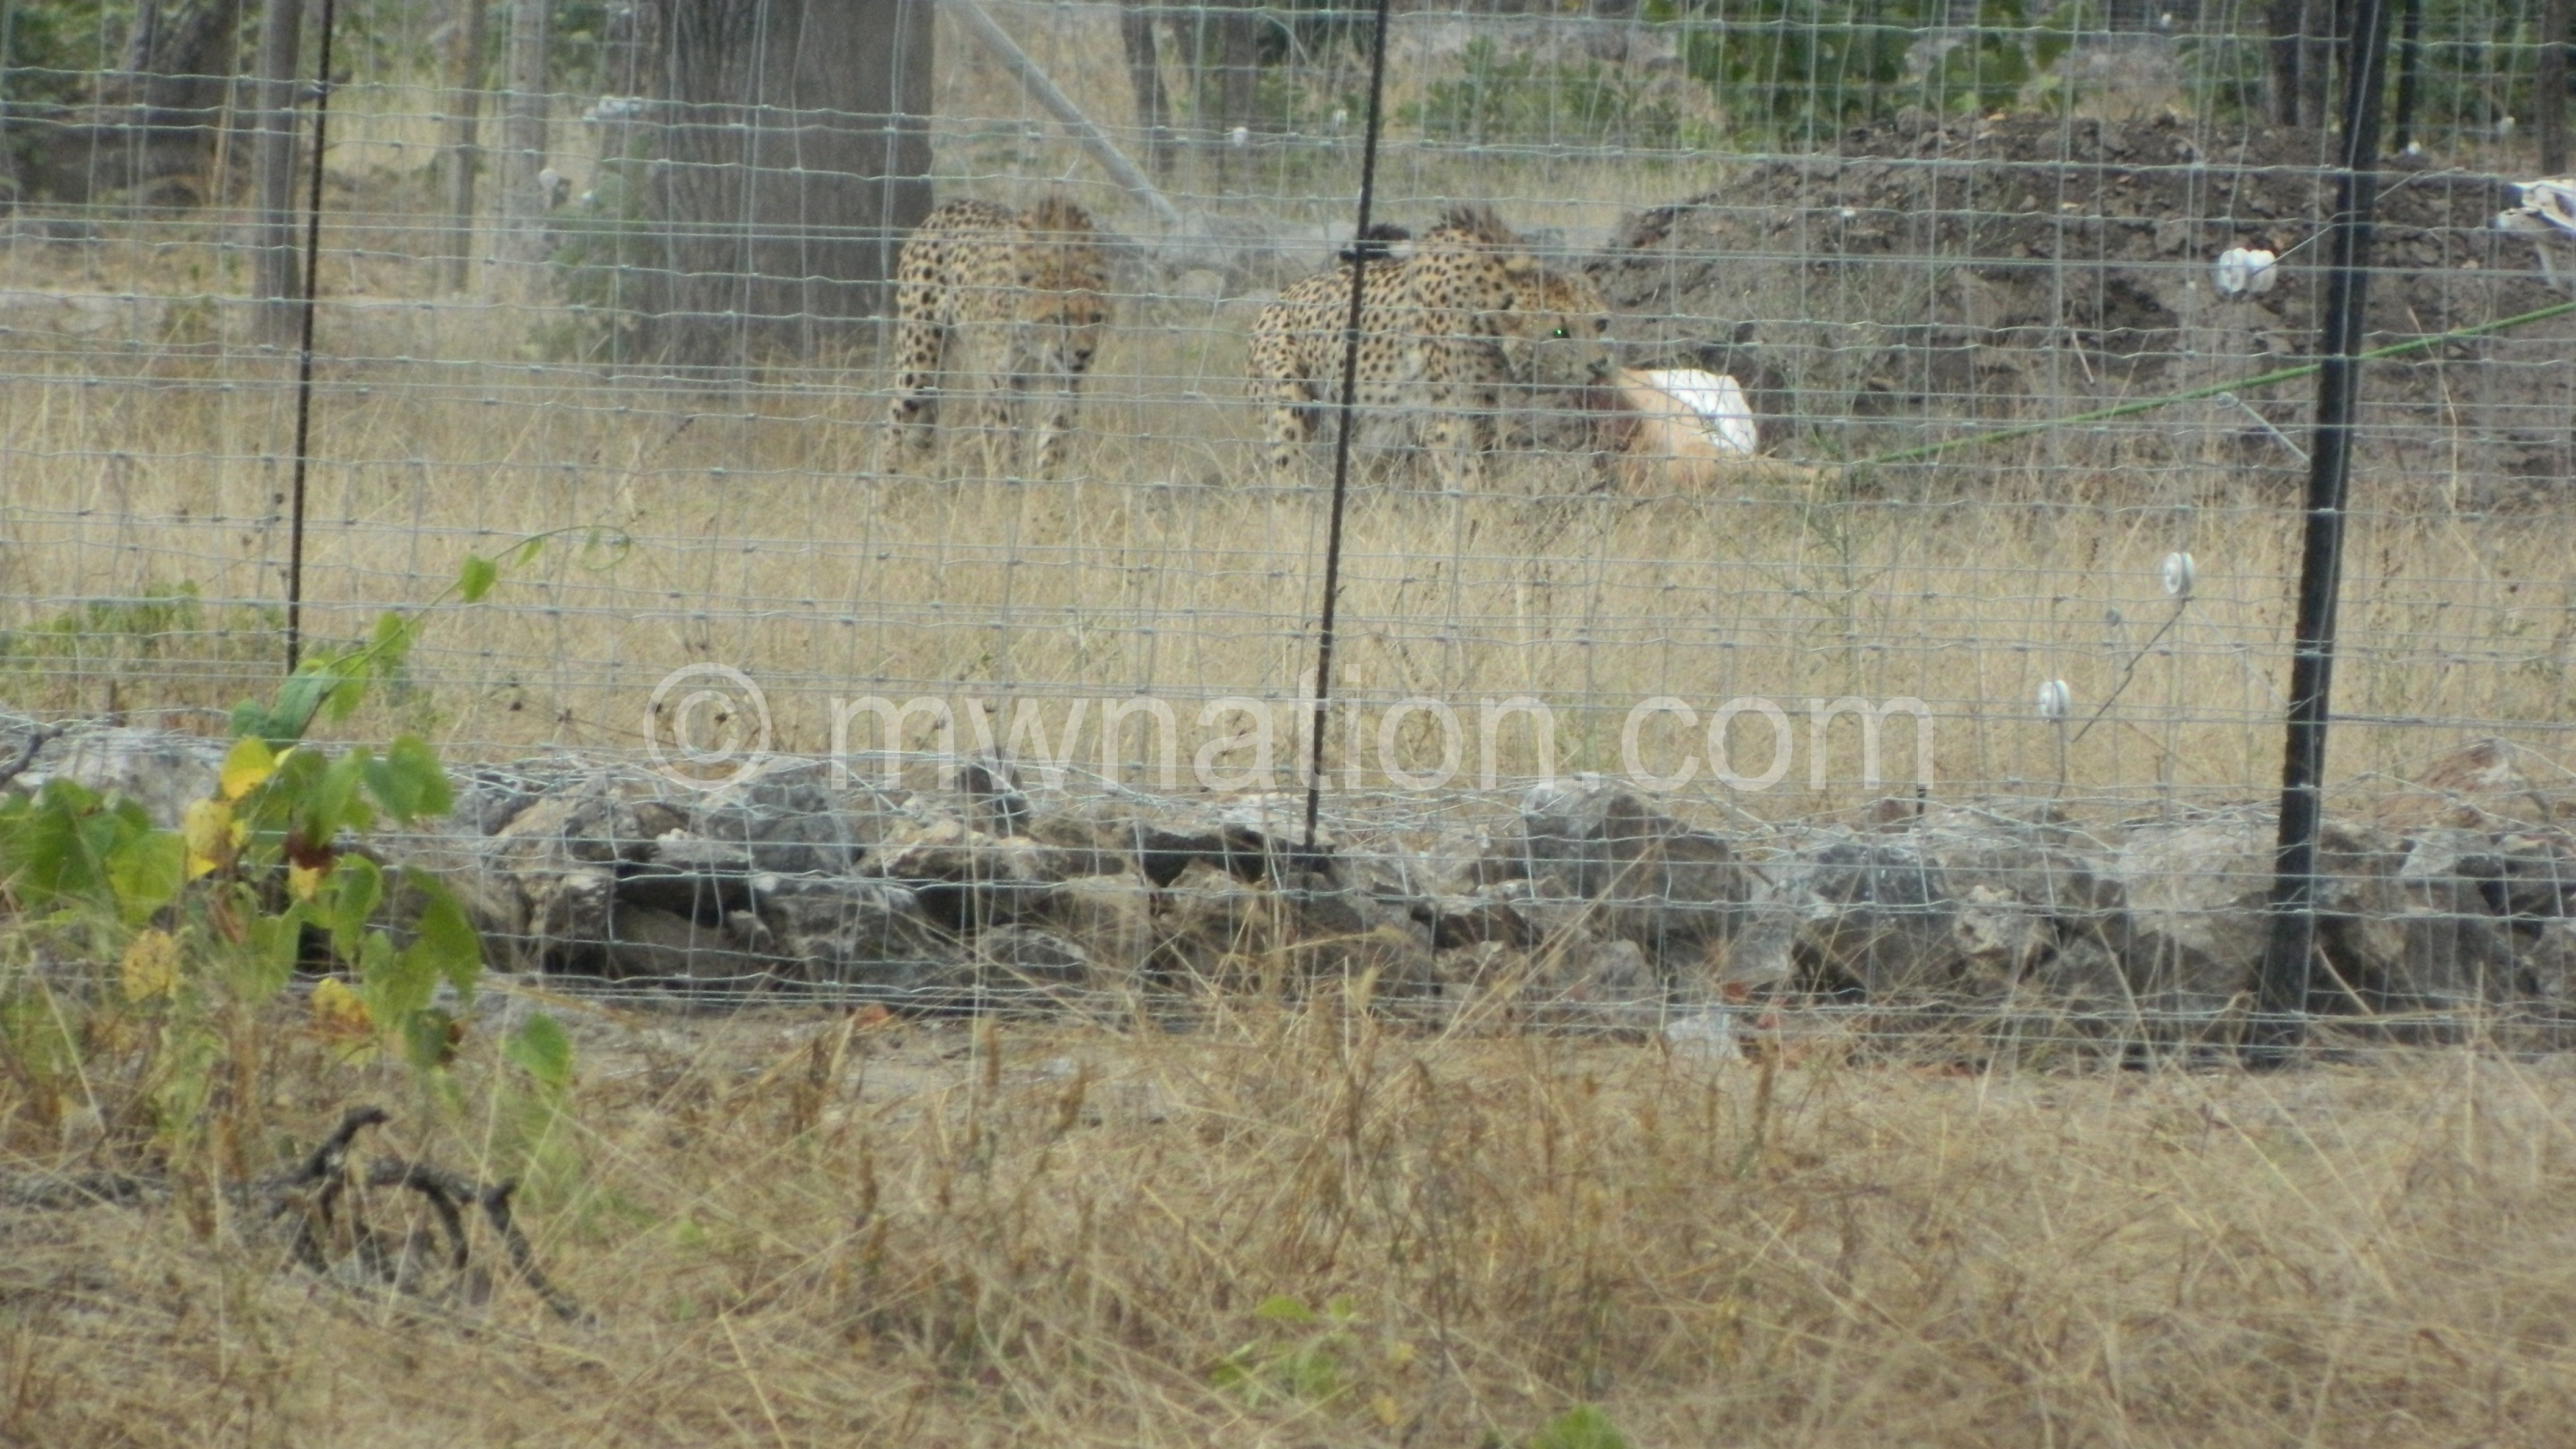 The cheetahs going after their bait | The Nation Online